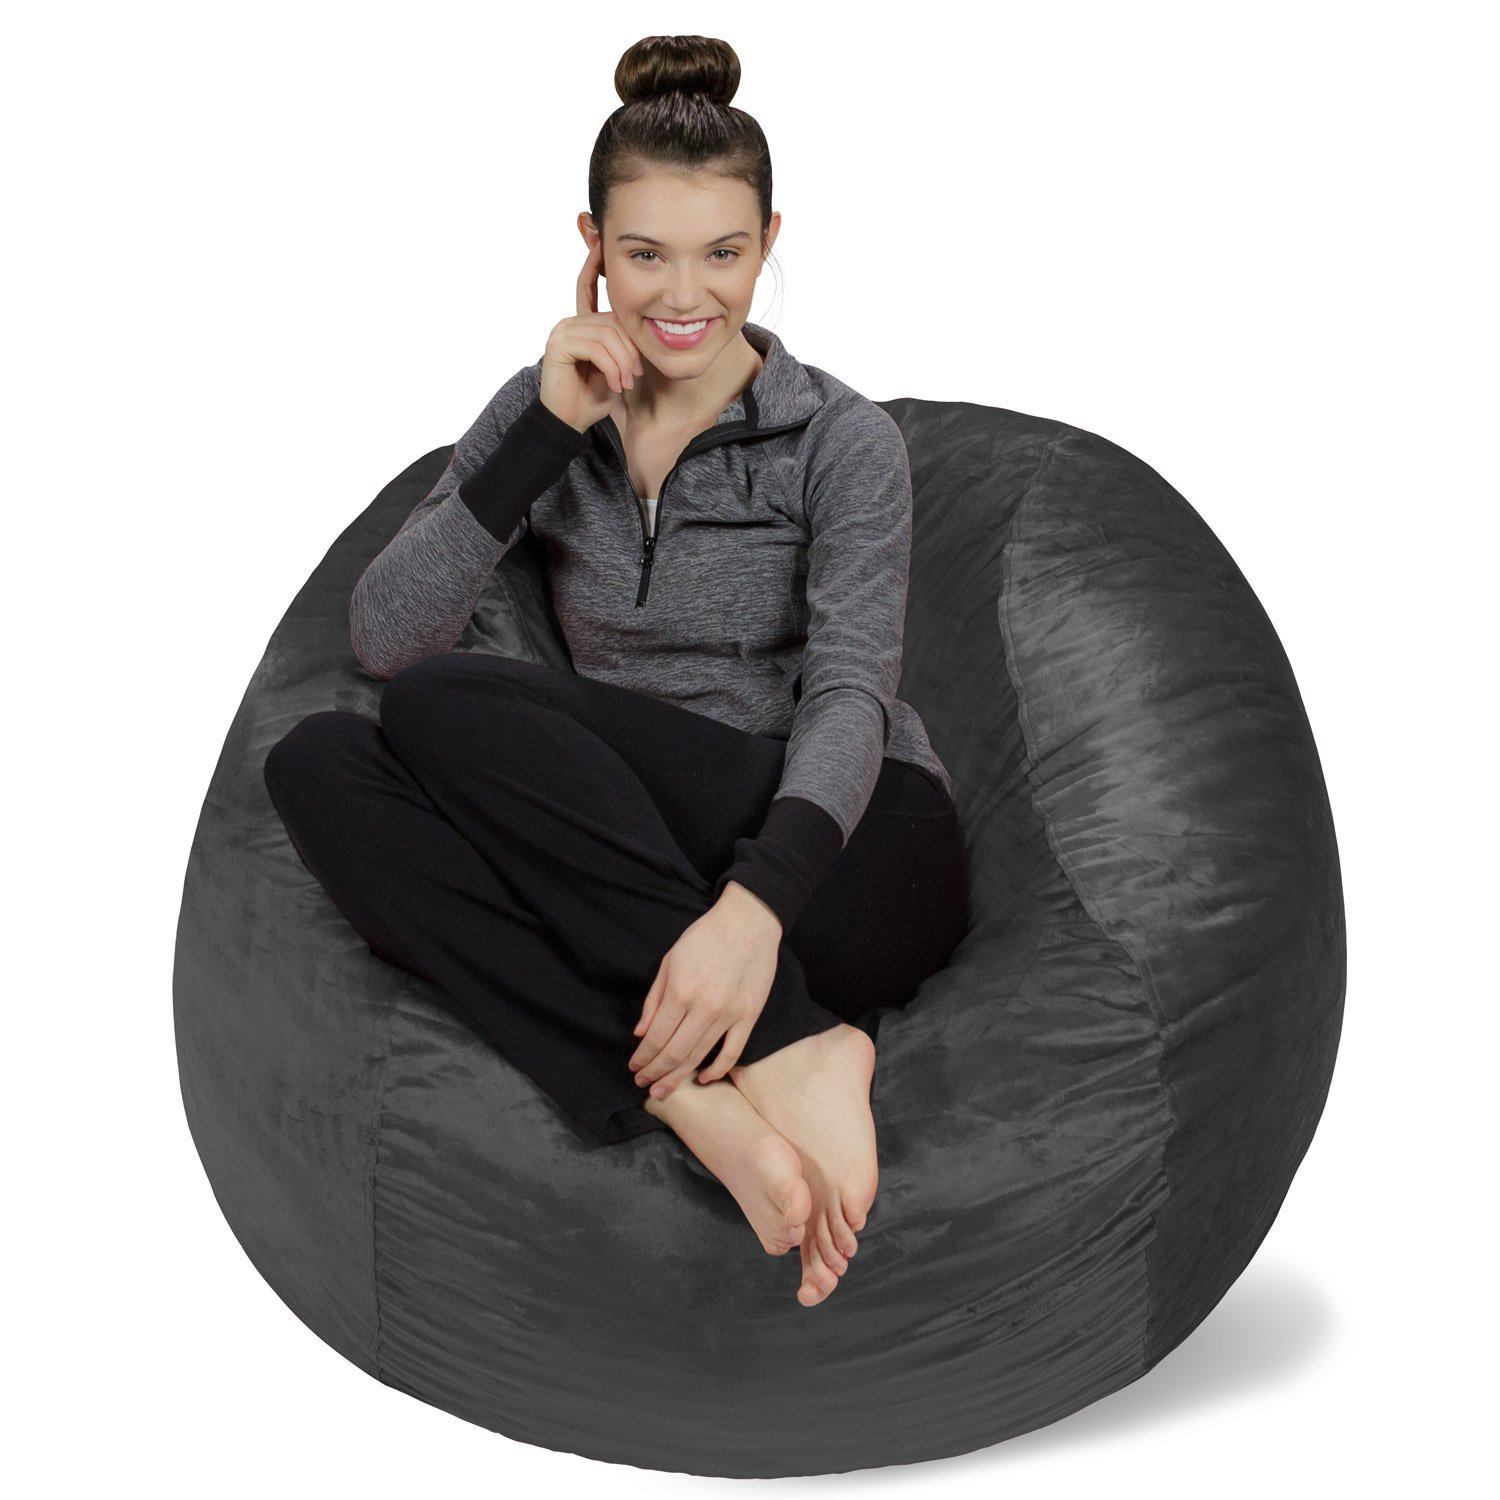 Sofa Sack   Bean Bags Memory Foam Bean Bag Chair, 4 Feet, Charcoal